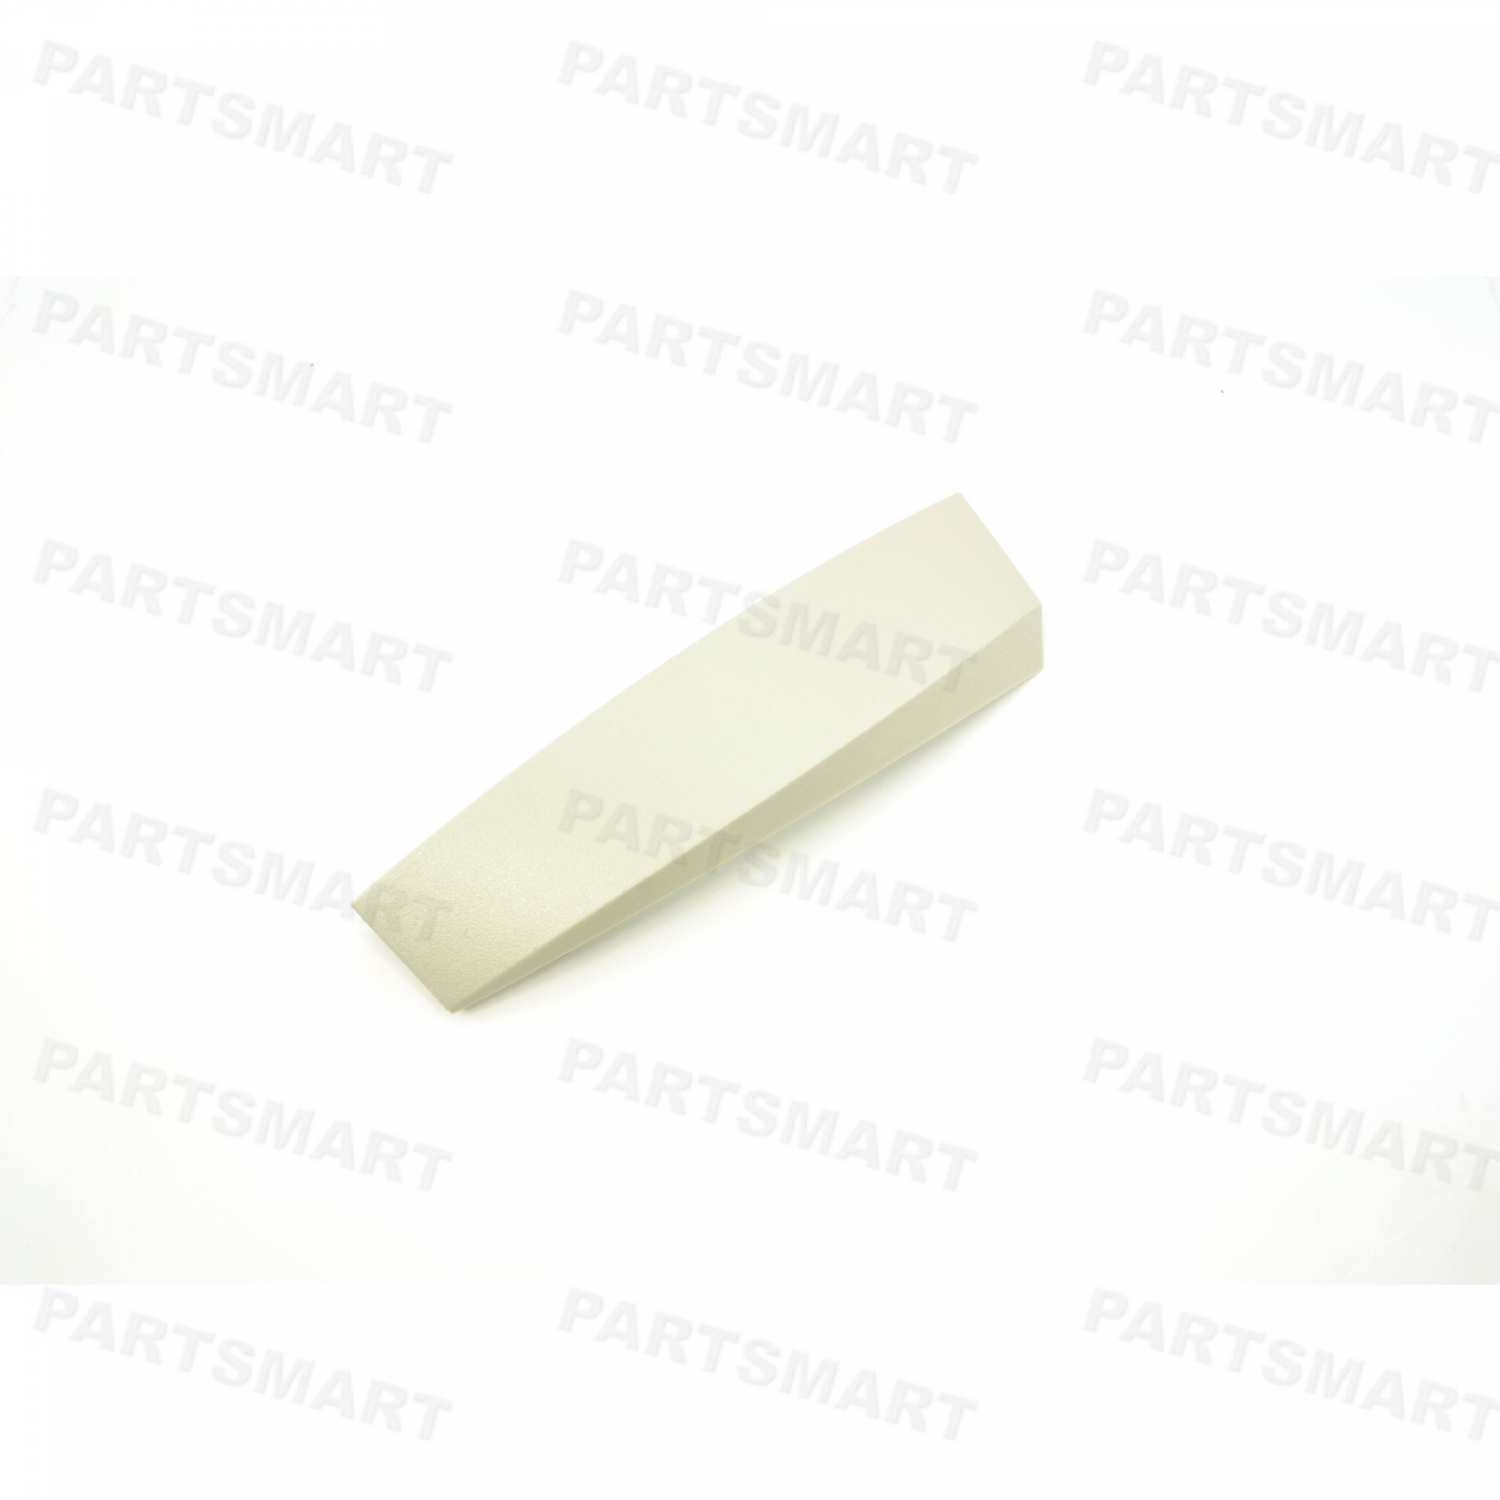 RA0-1183-000 Cover, Connector for HP LaserJet 1200